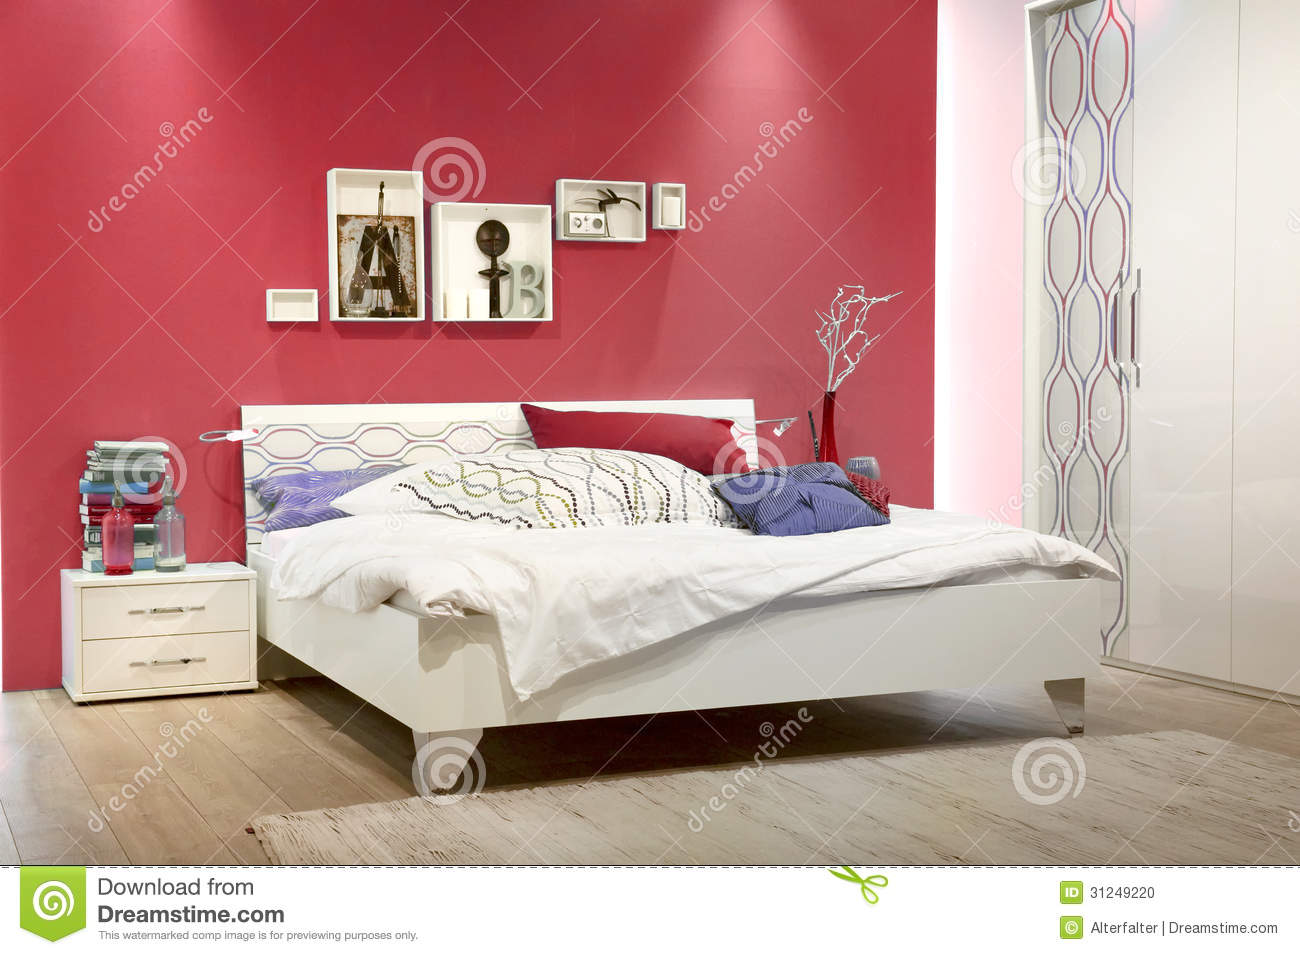 Chambre coucher blanche avec le mur rouge photo stock for Chambre a coucher blanche